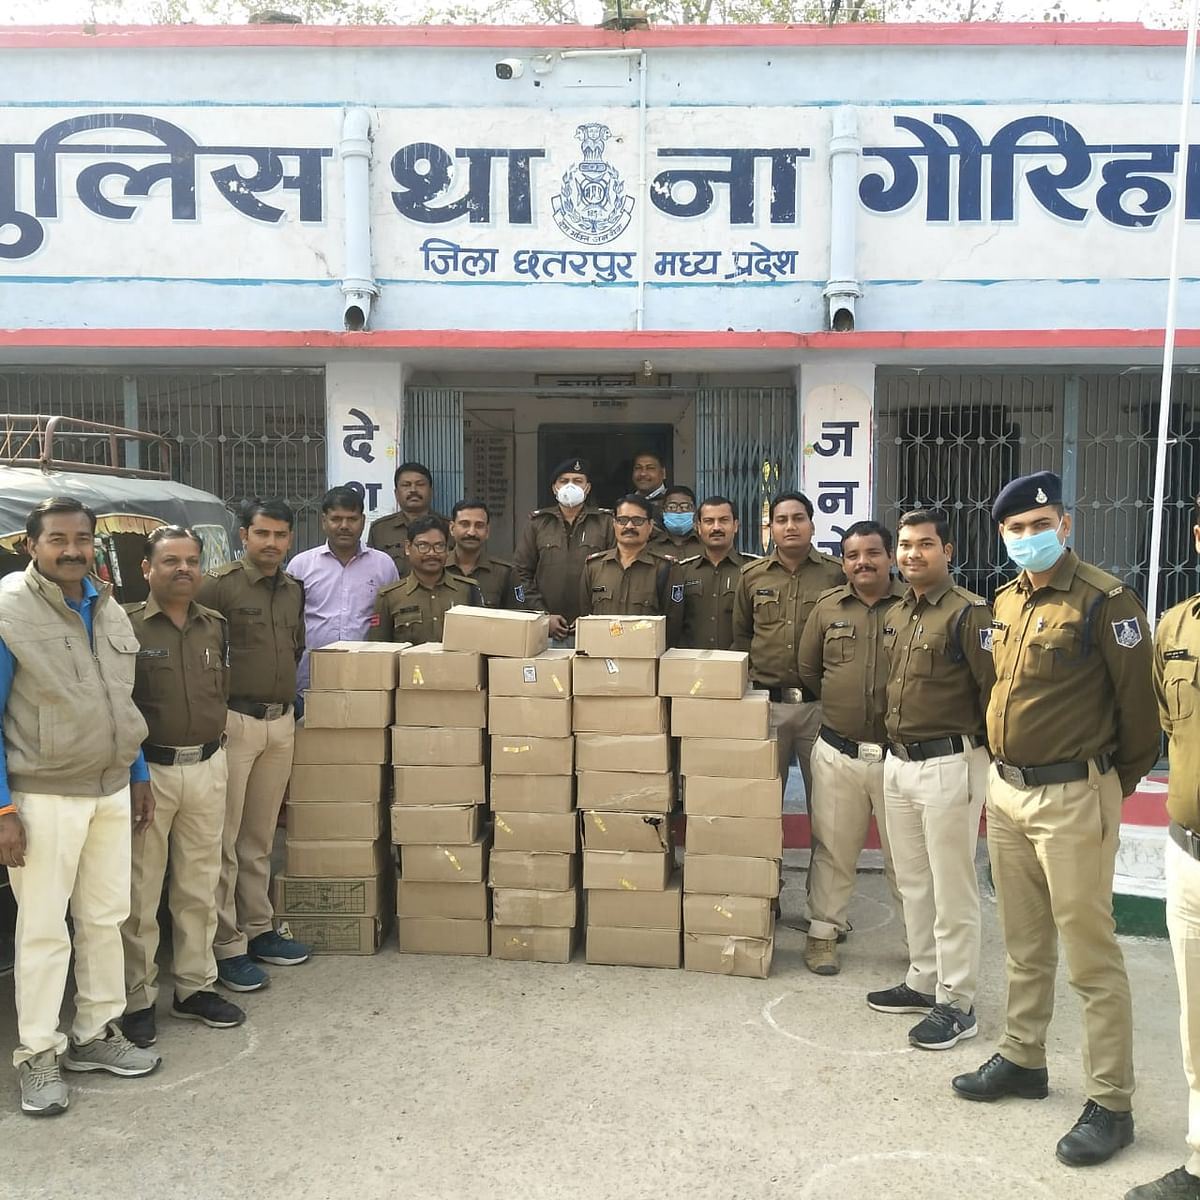 Seized illegal liquor being taken from auto, accused absconding